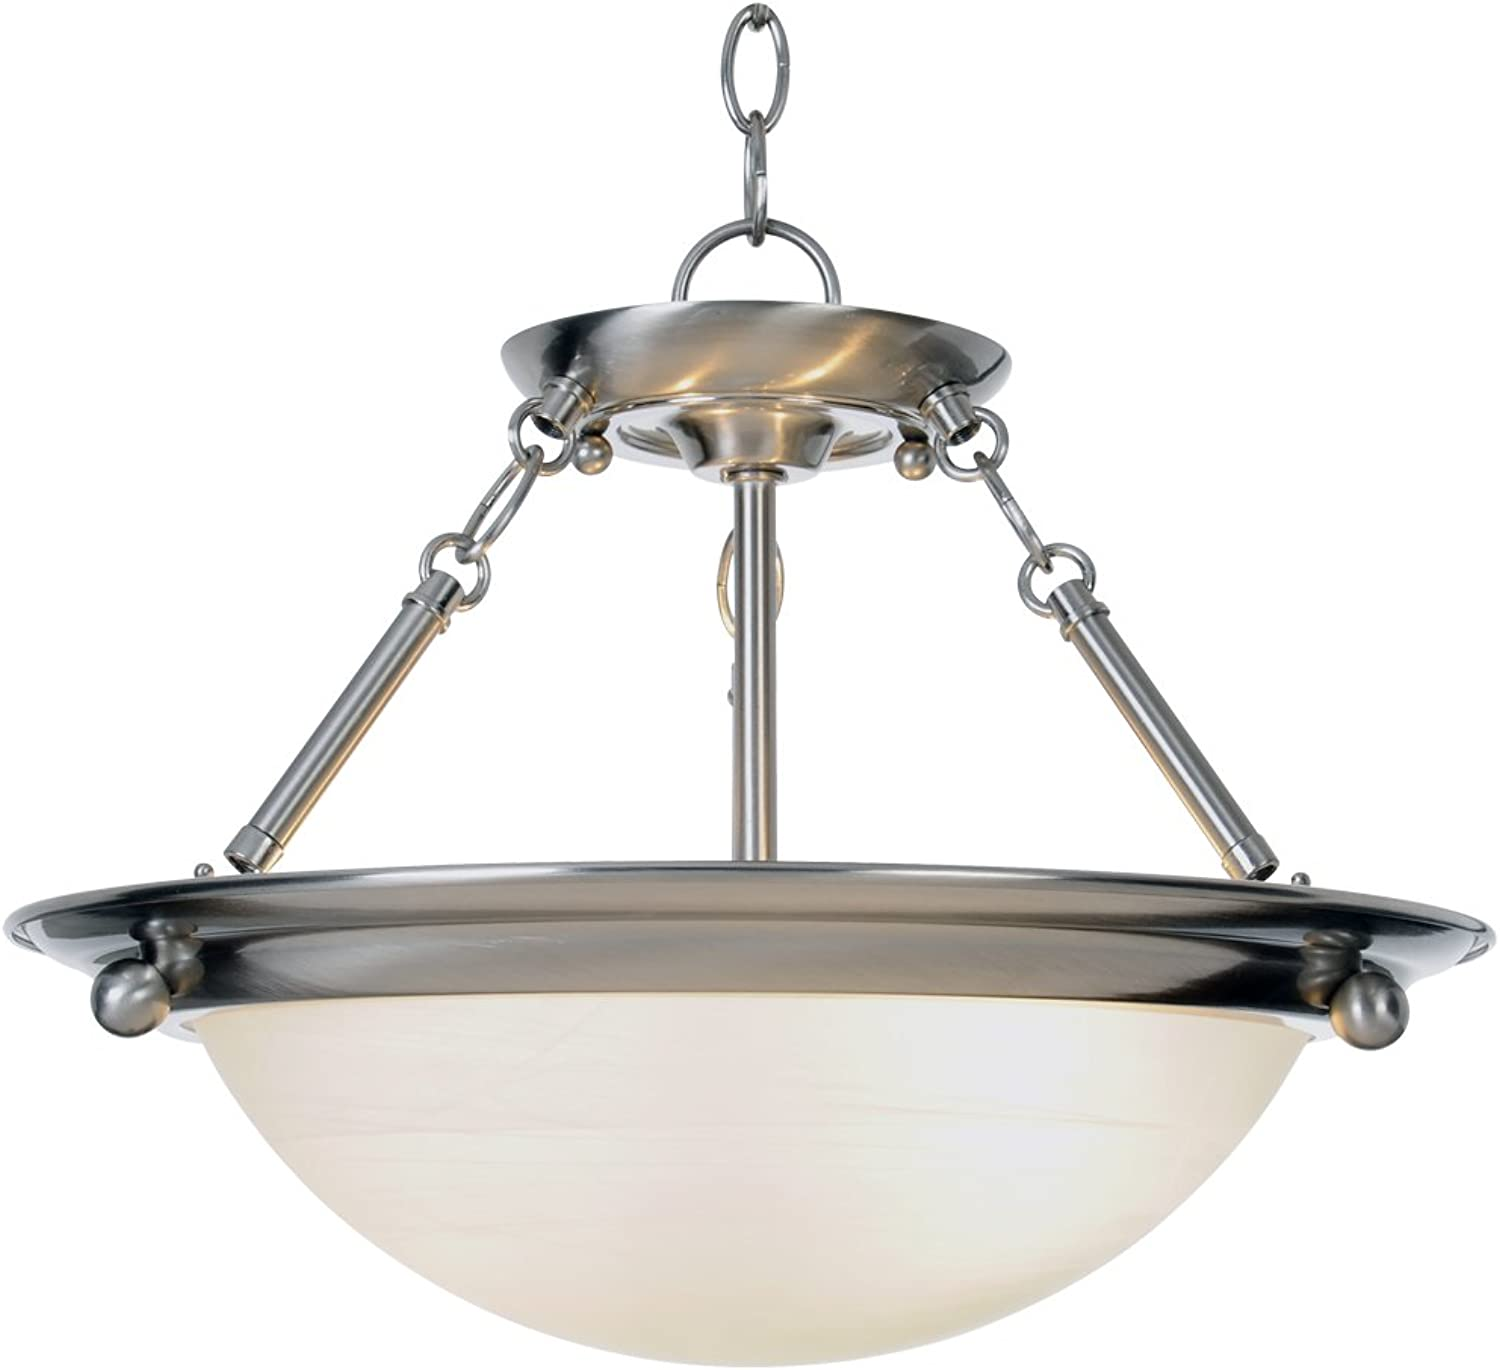 Monument 560795  Contemporary Pendant, Brushed Nickel, 15-1 2 X 13-1 4 In.